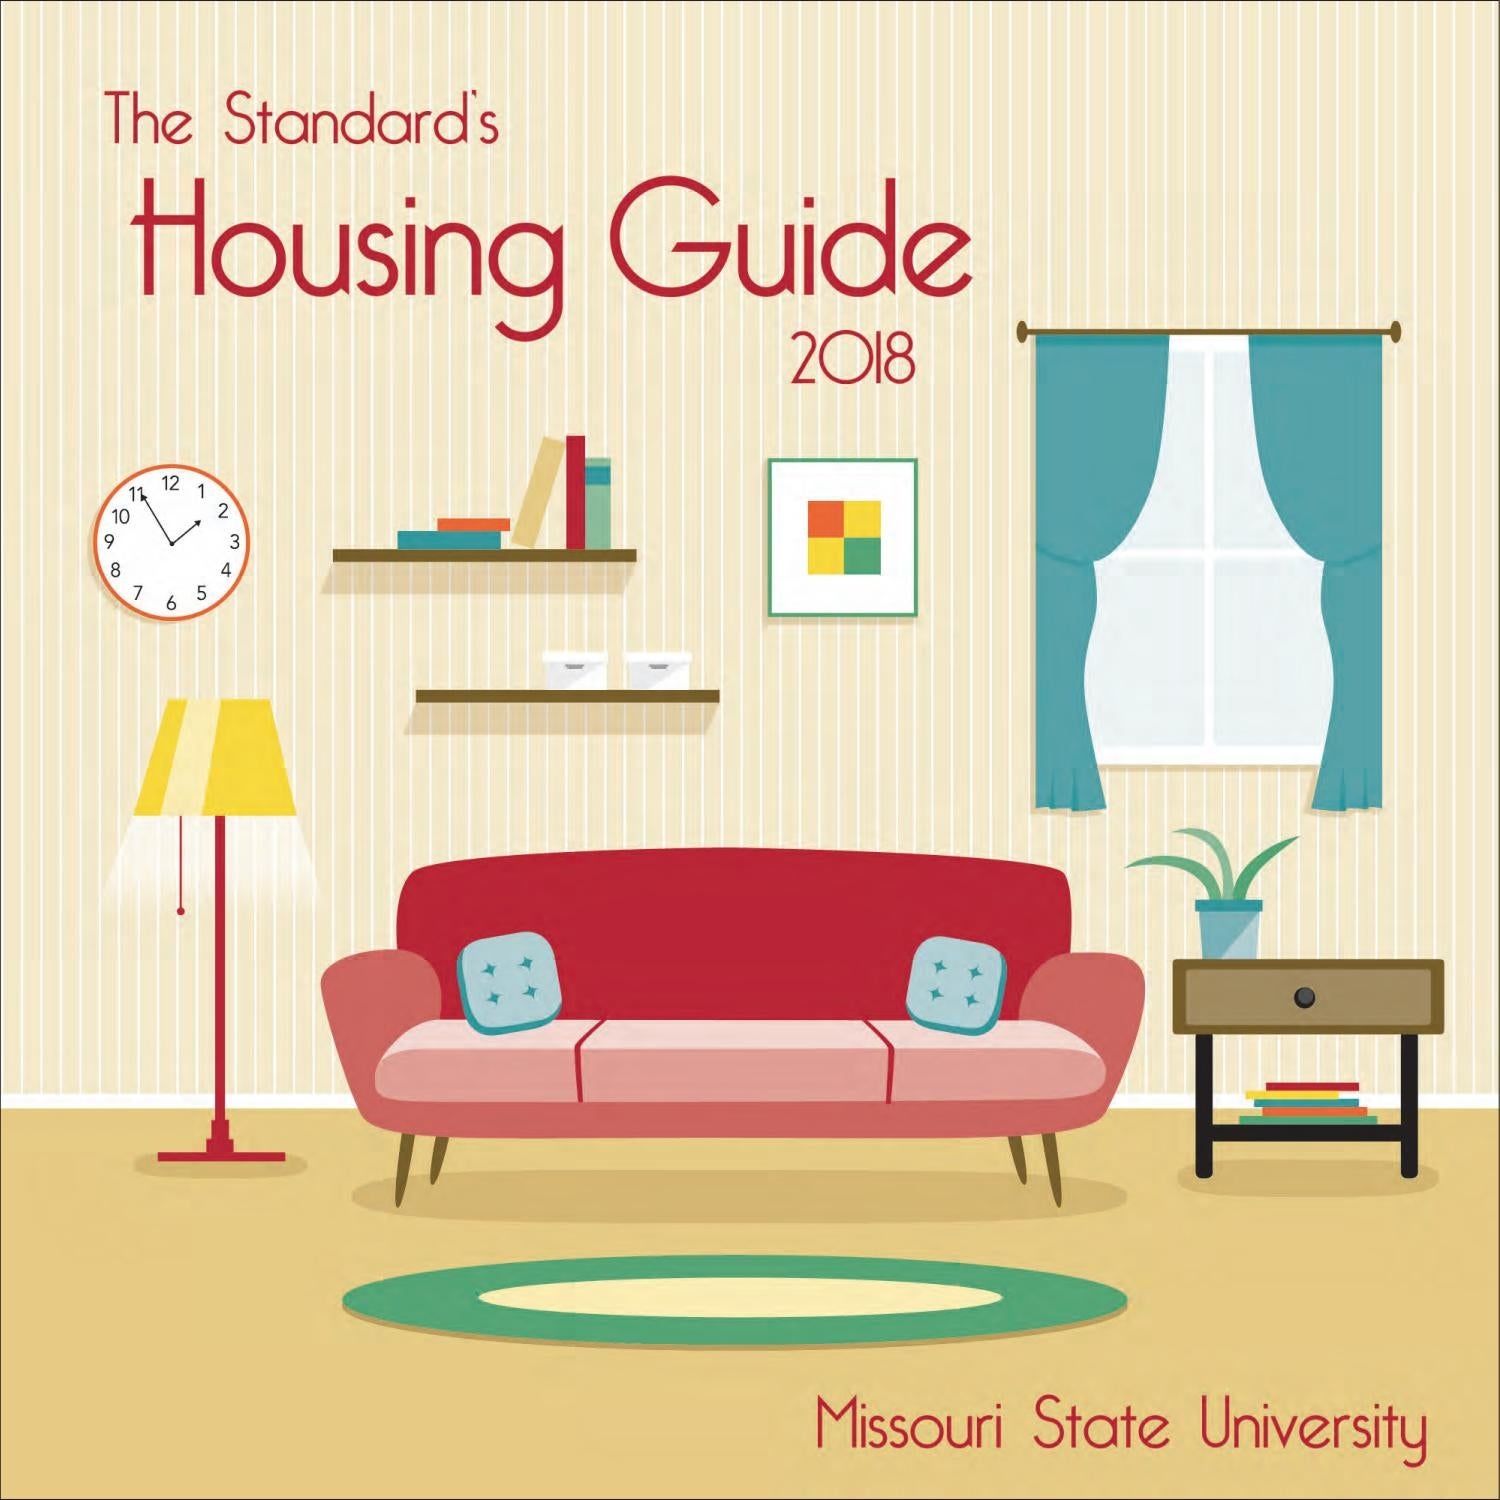 Housing Guide 2018 By The Standard Missouri State University Issuu